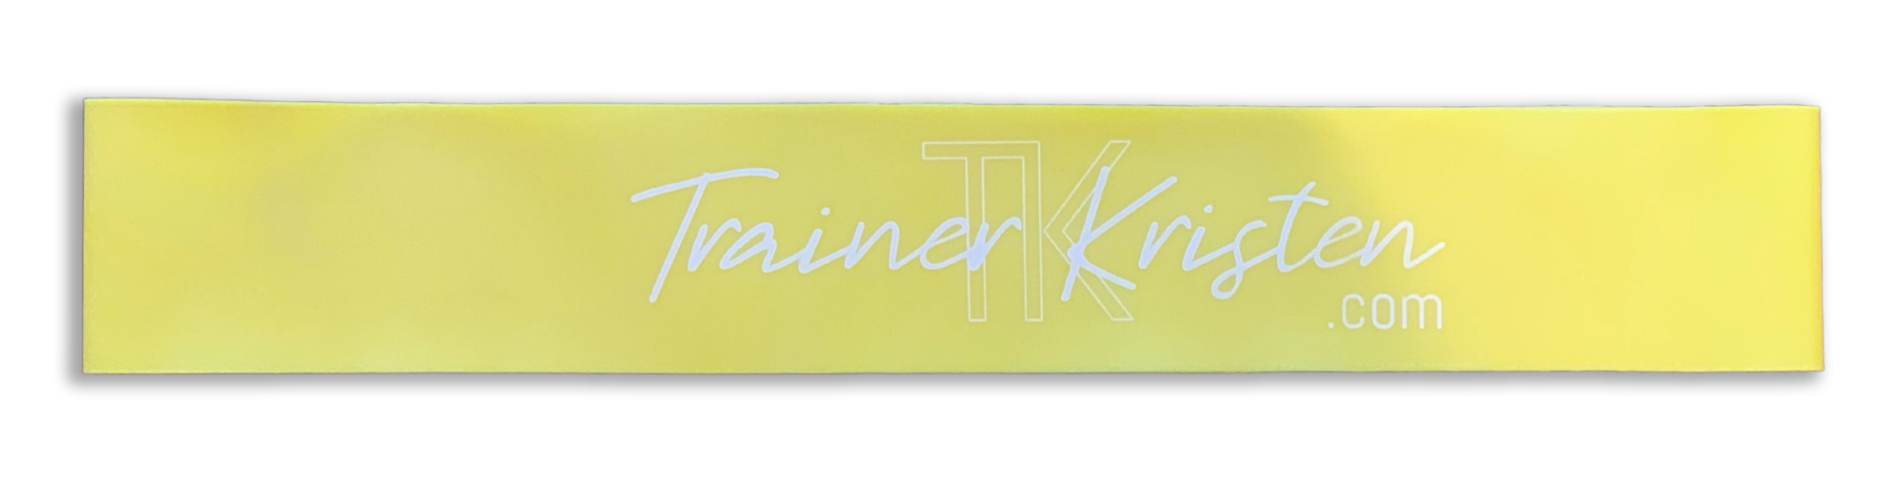 All Challengers receive a TK Circle Band*